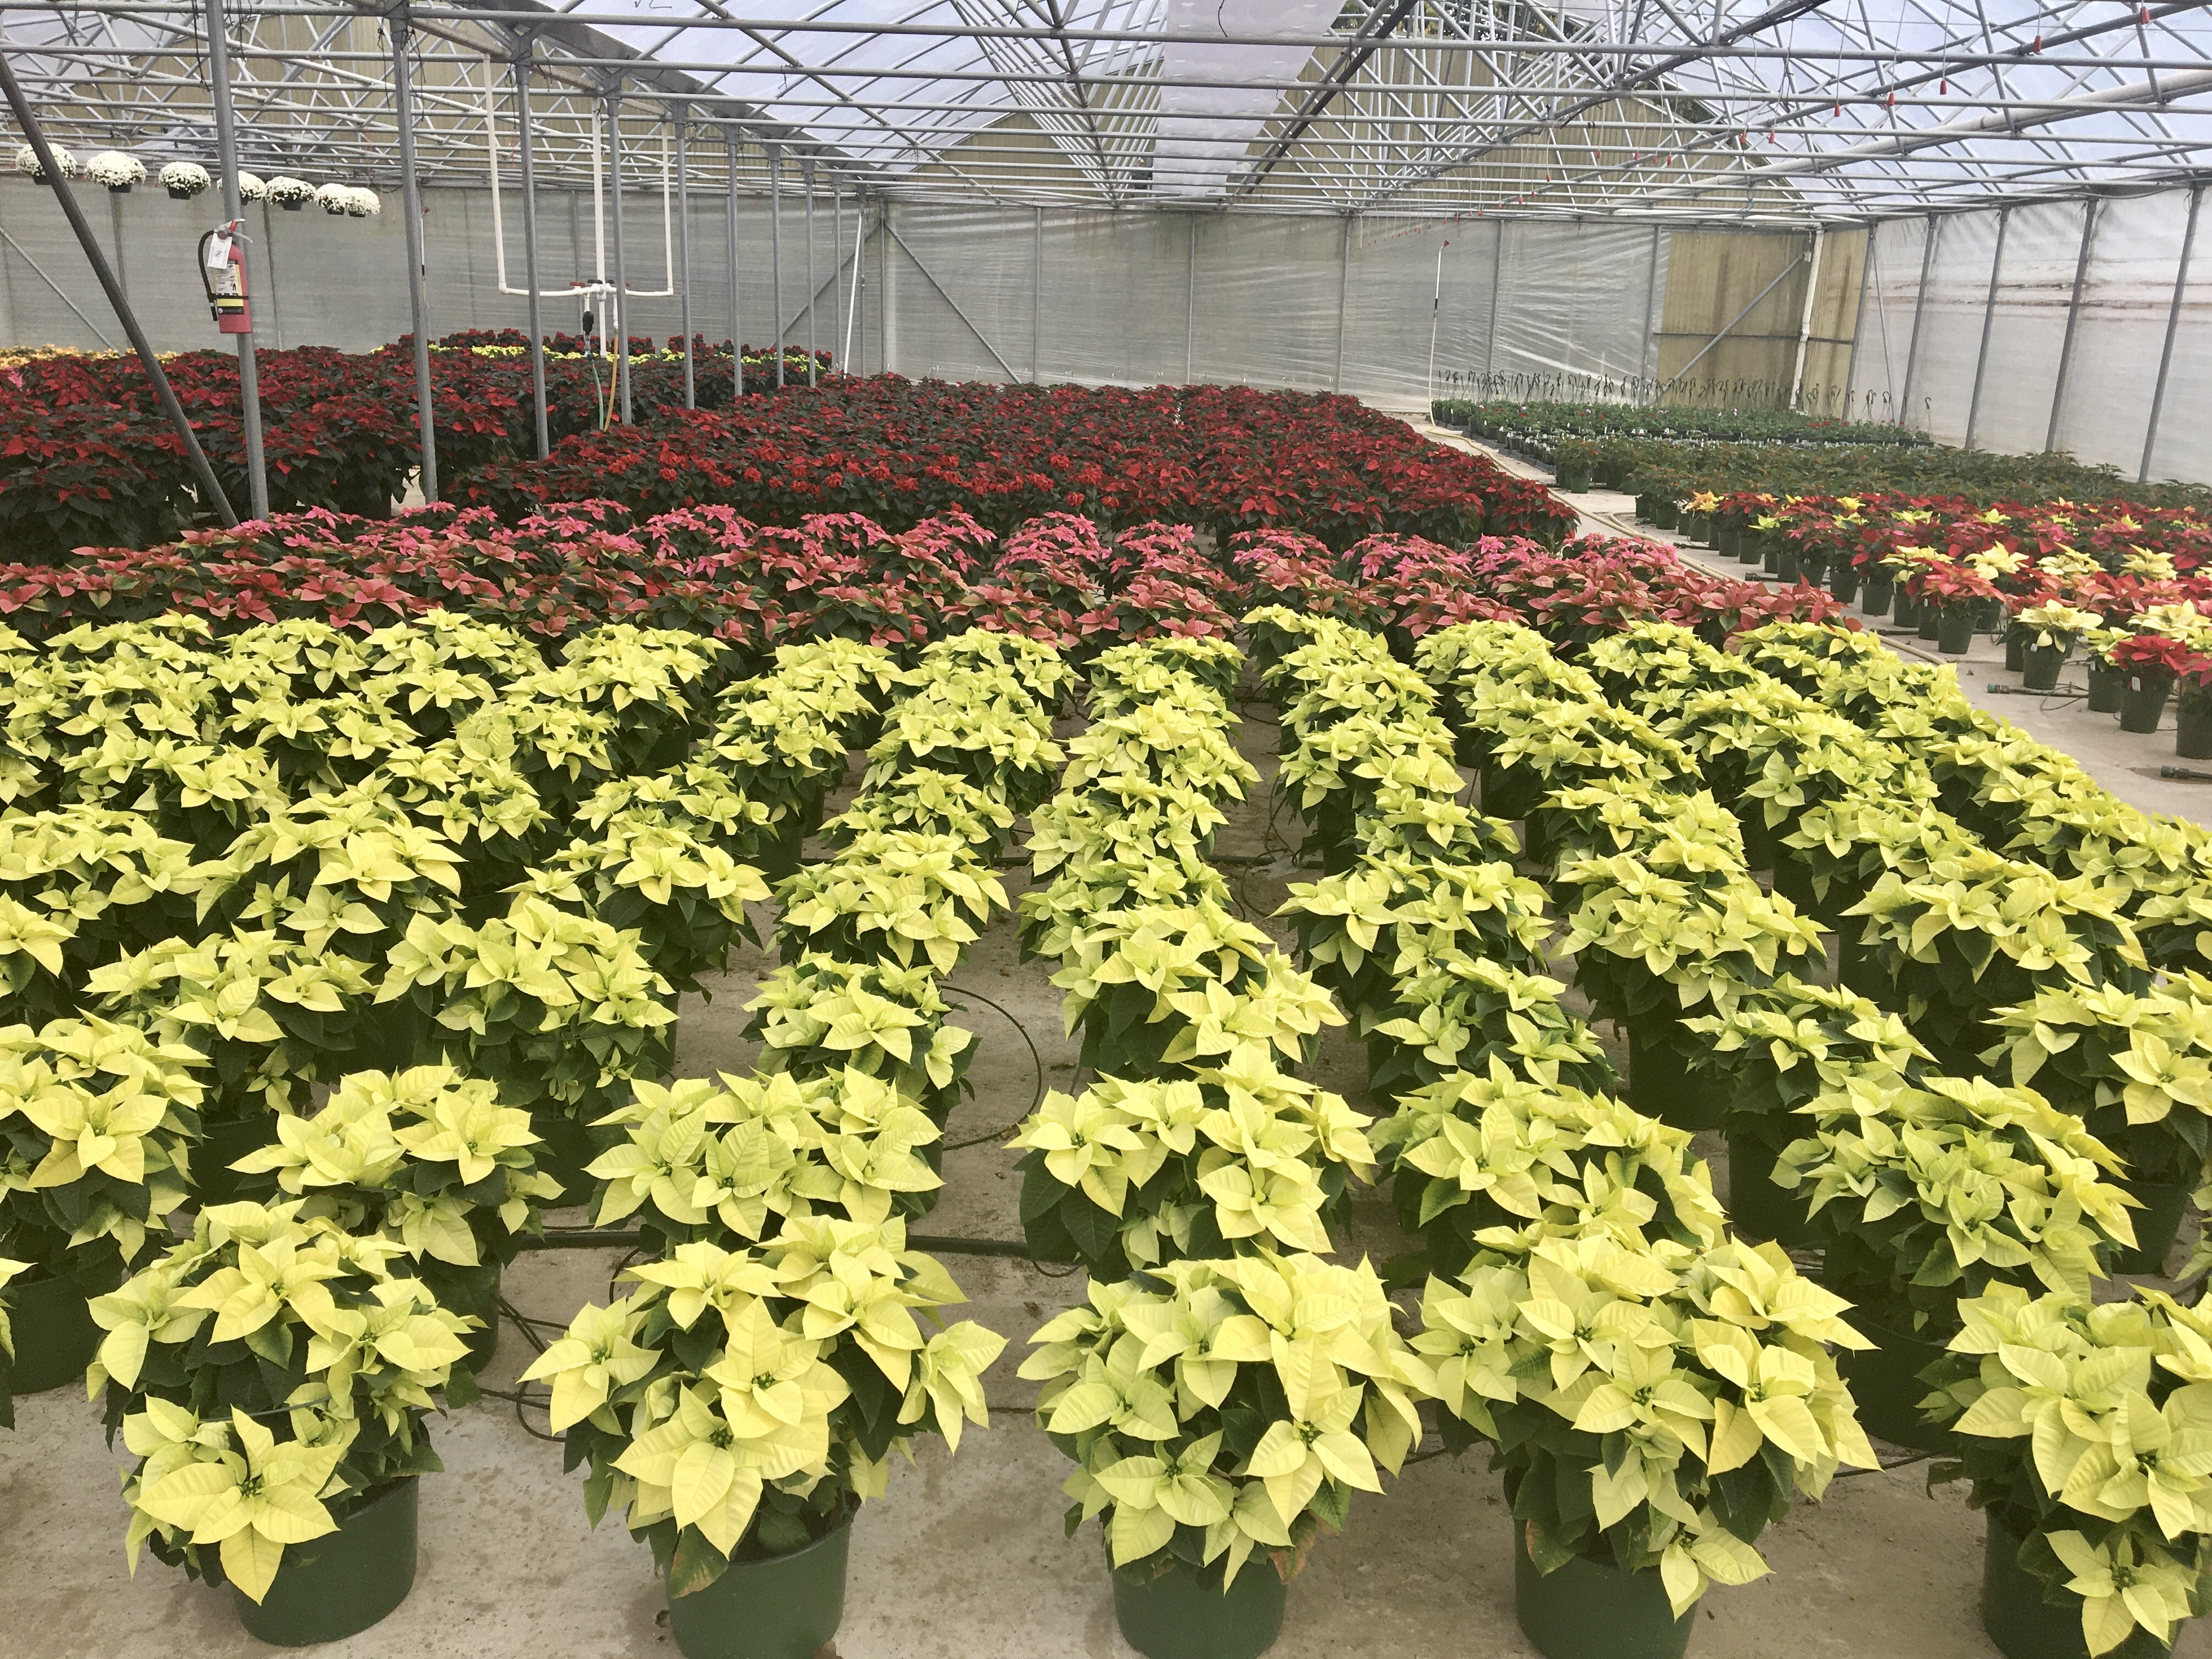 Poinsettias come in a range of colors from white to red.jpg thumbnail